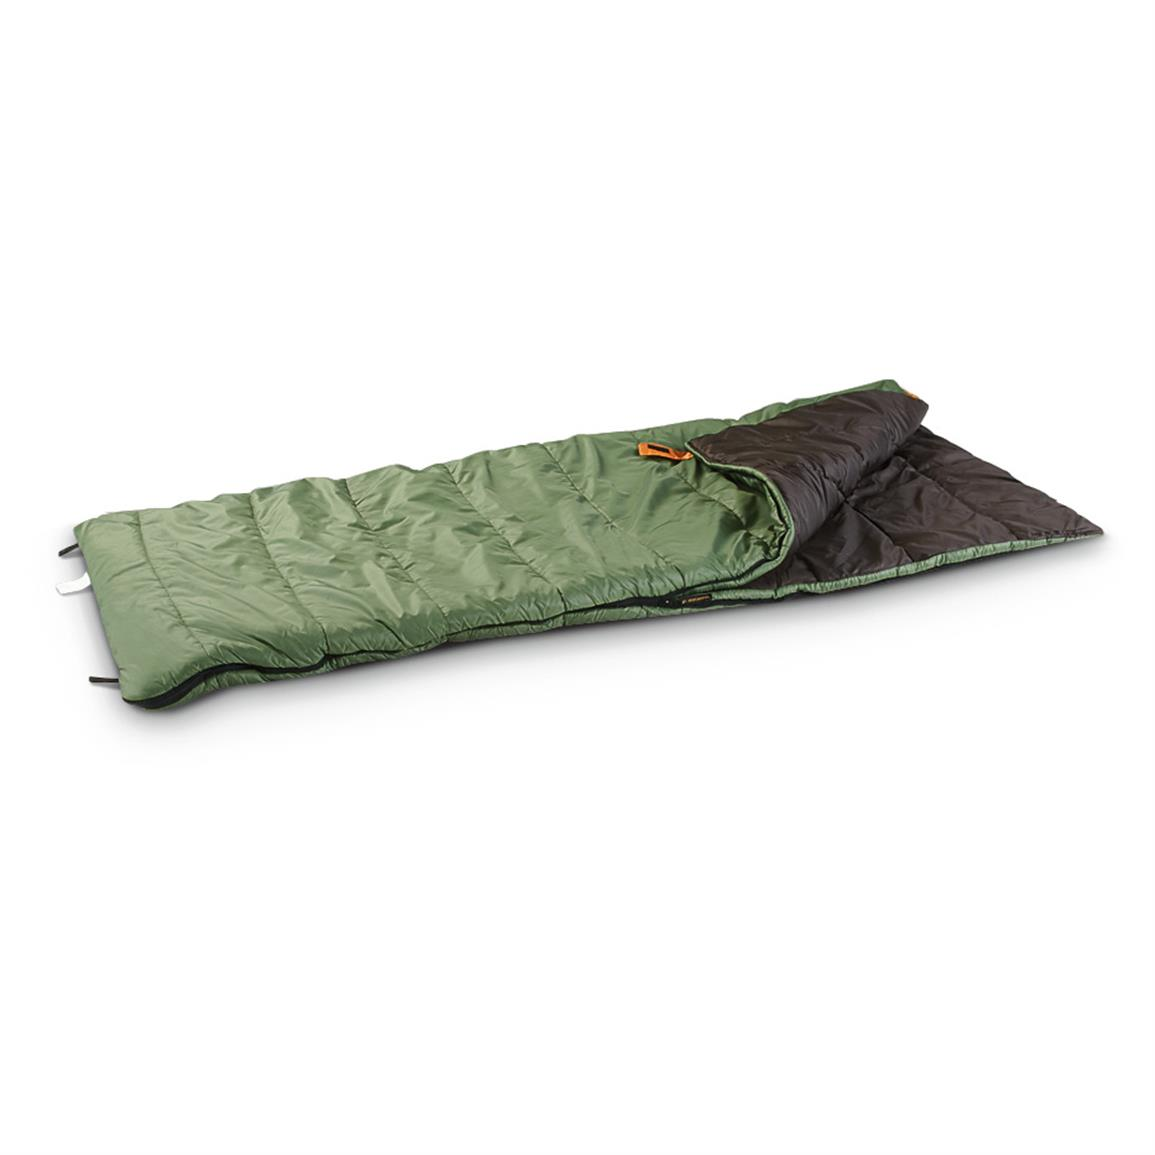 "Mountain Springs 40 Degree F Sleeping Bag • Comfort rated to 40°F • Measures 33"" x 80""l."